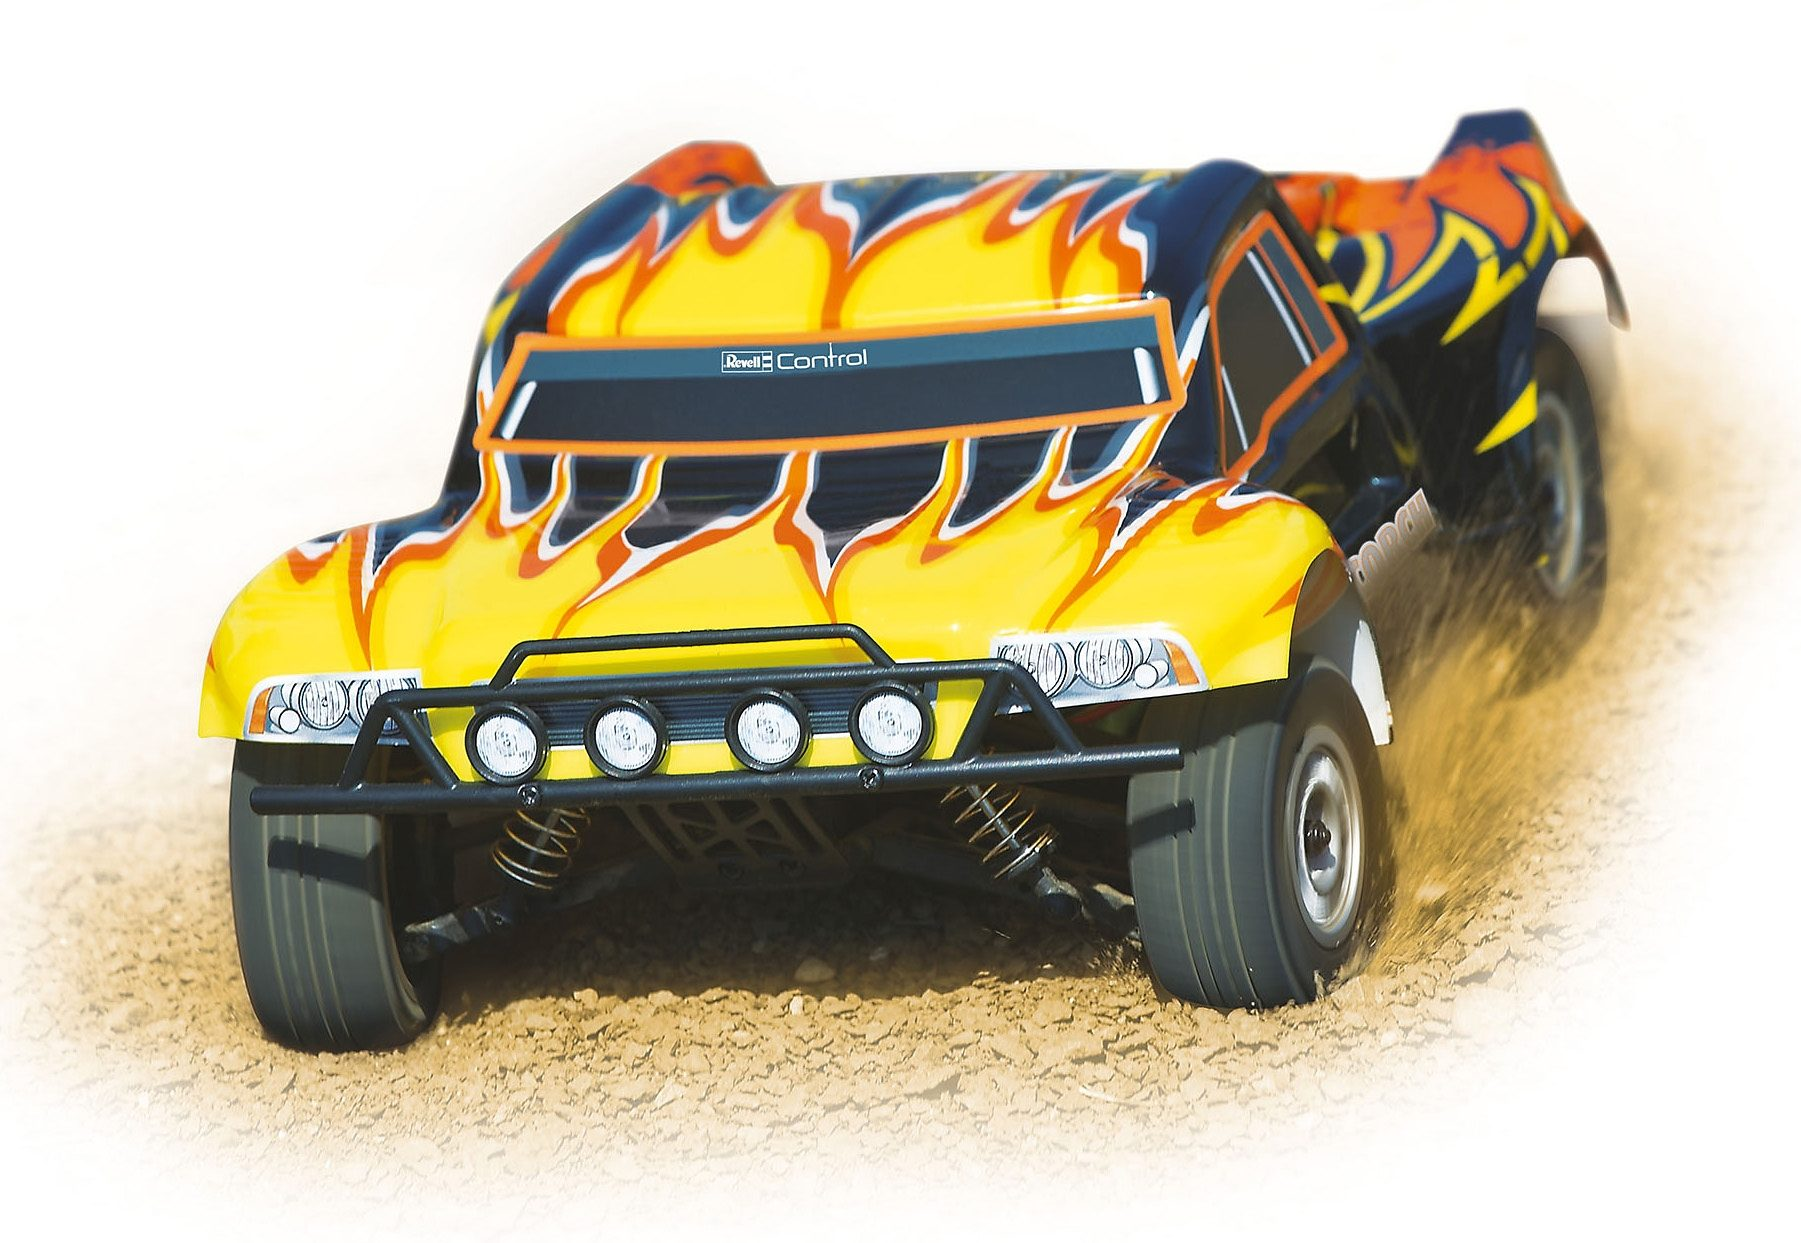 Revell® RC Auto, »Revell® Control Short Course Truck Scorch«